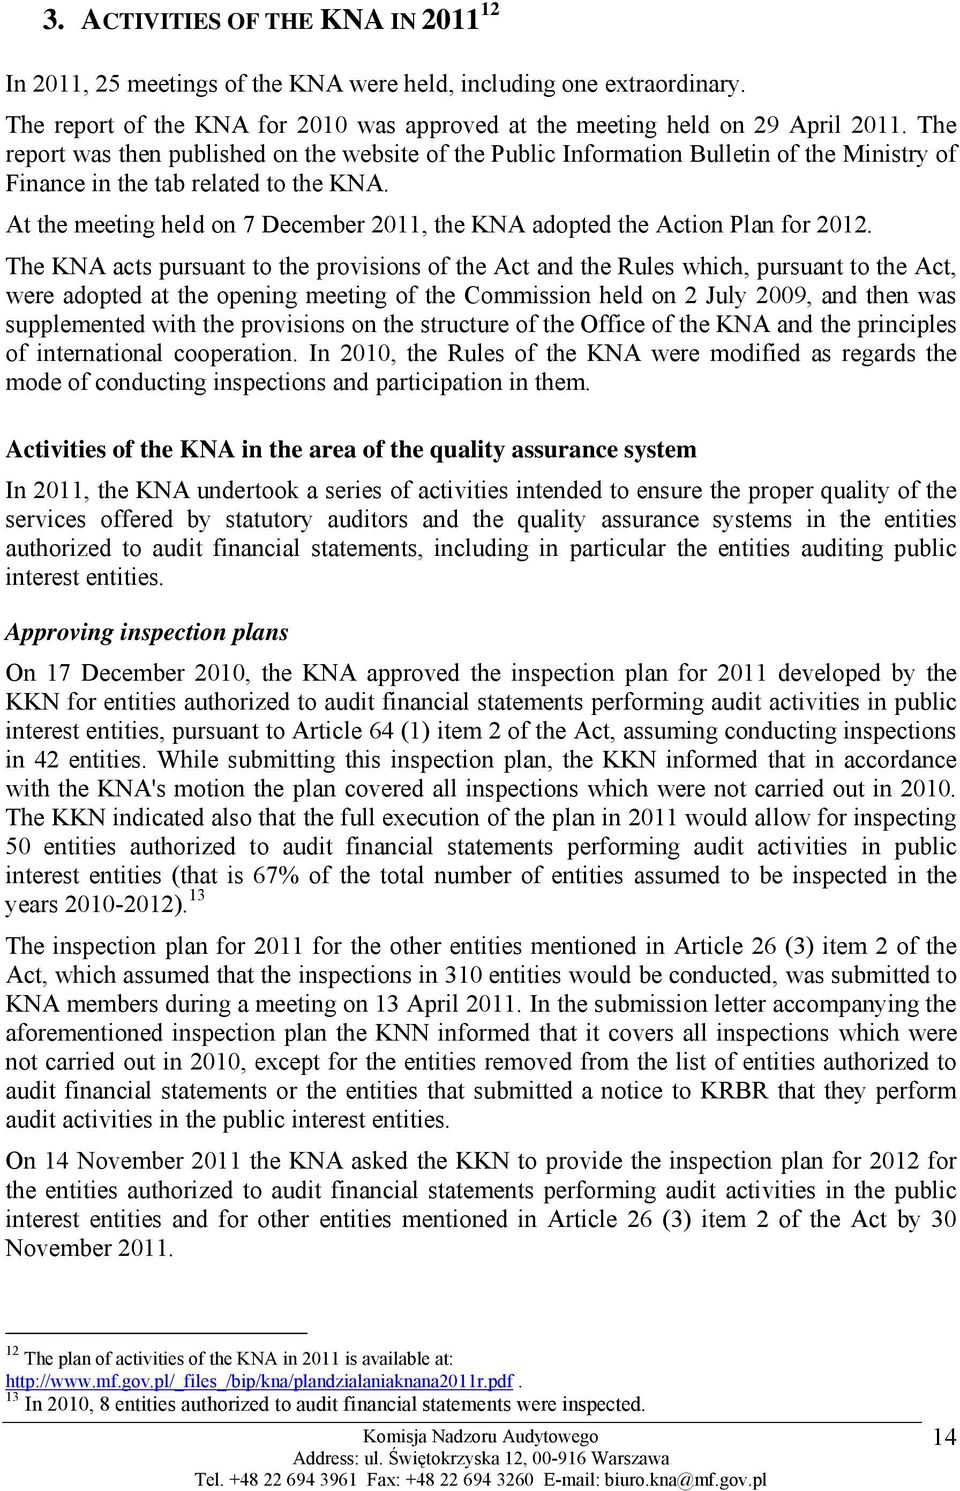 At the meeting held on 7 December 2011, the KNA adopted the Action Plan for 2012.